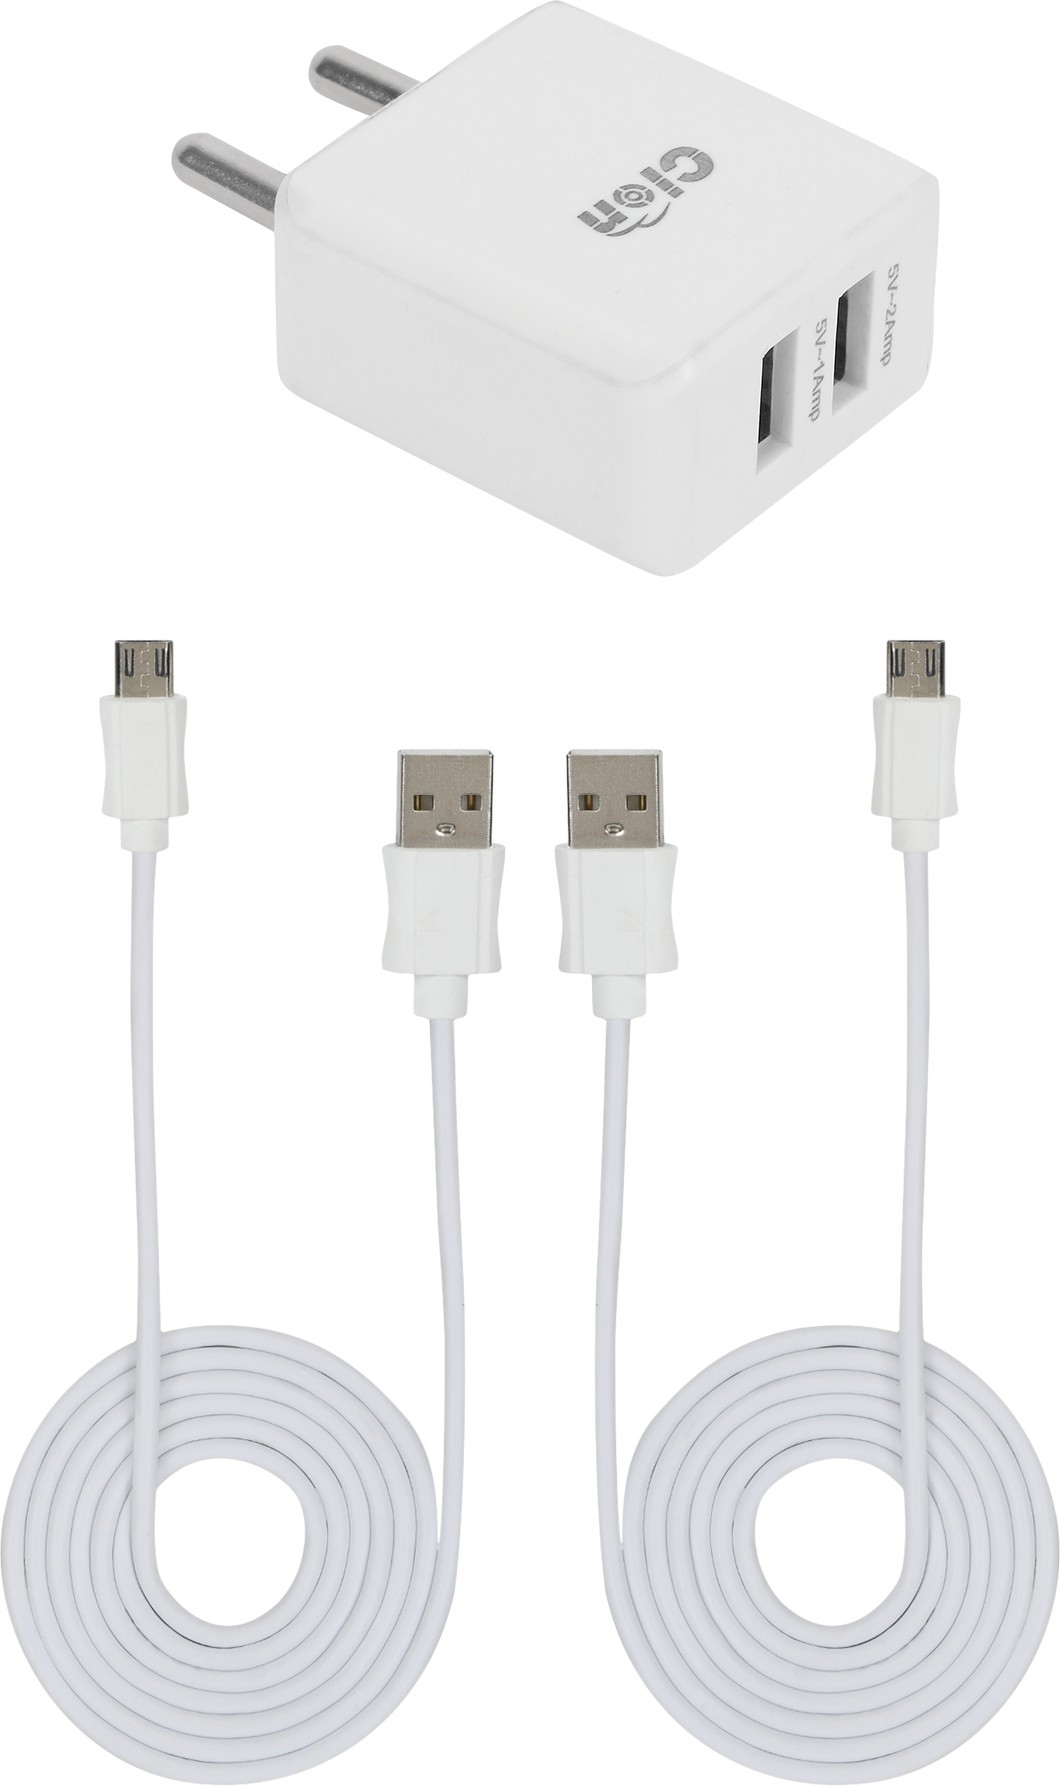 Cion Dual Port USB Adapter with 2 Data/Sync Cables (1 mtr) for Dsire A9 Mobile Charger(White)